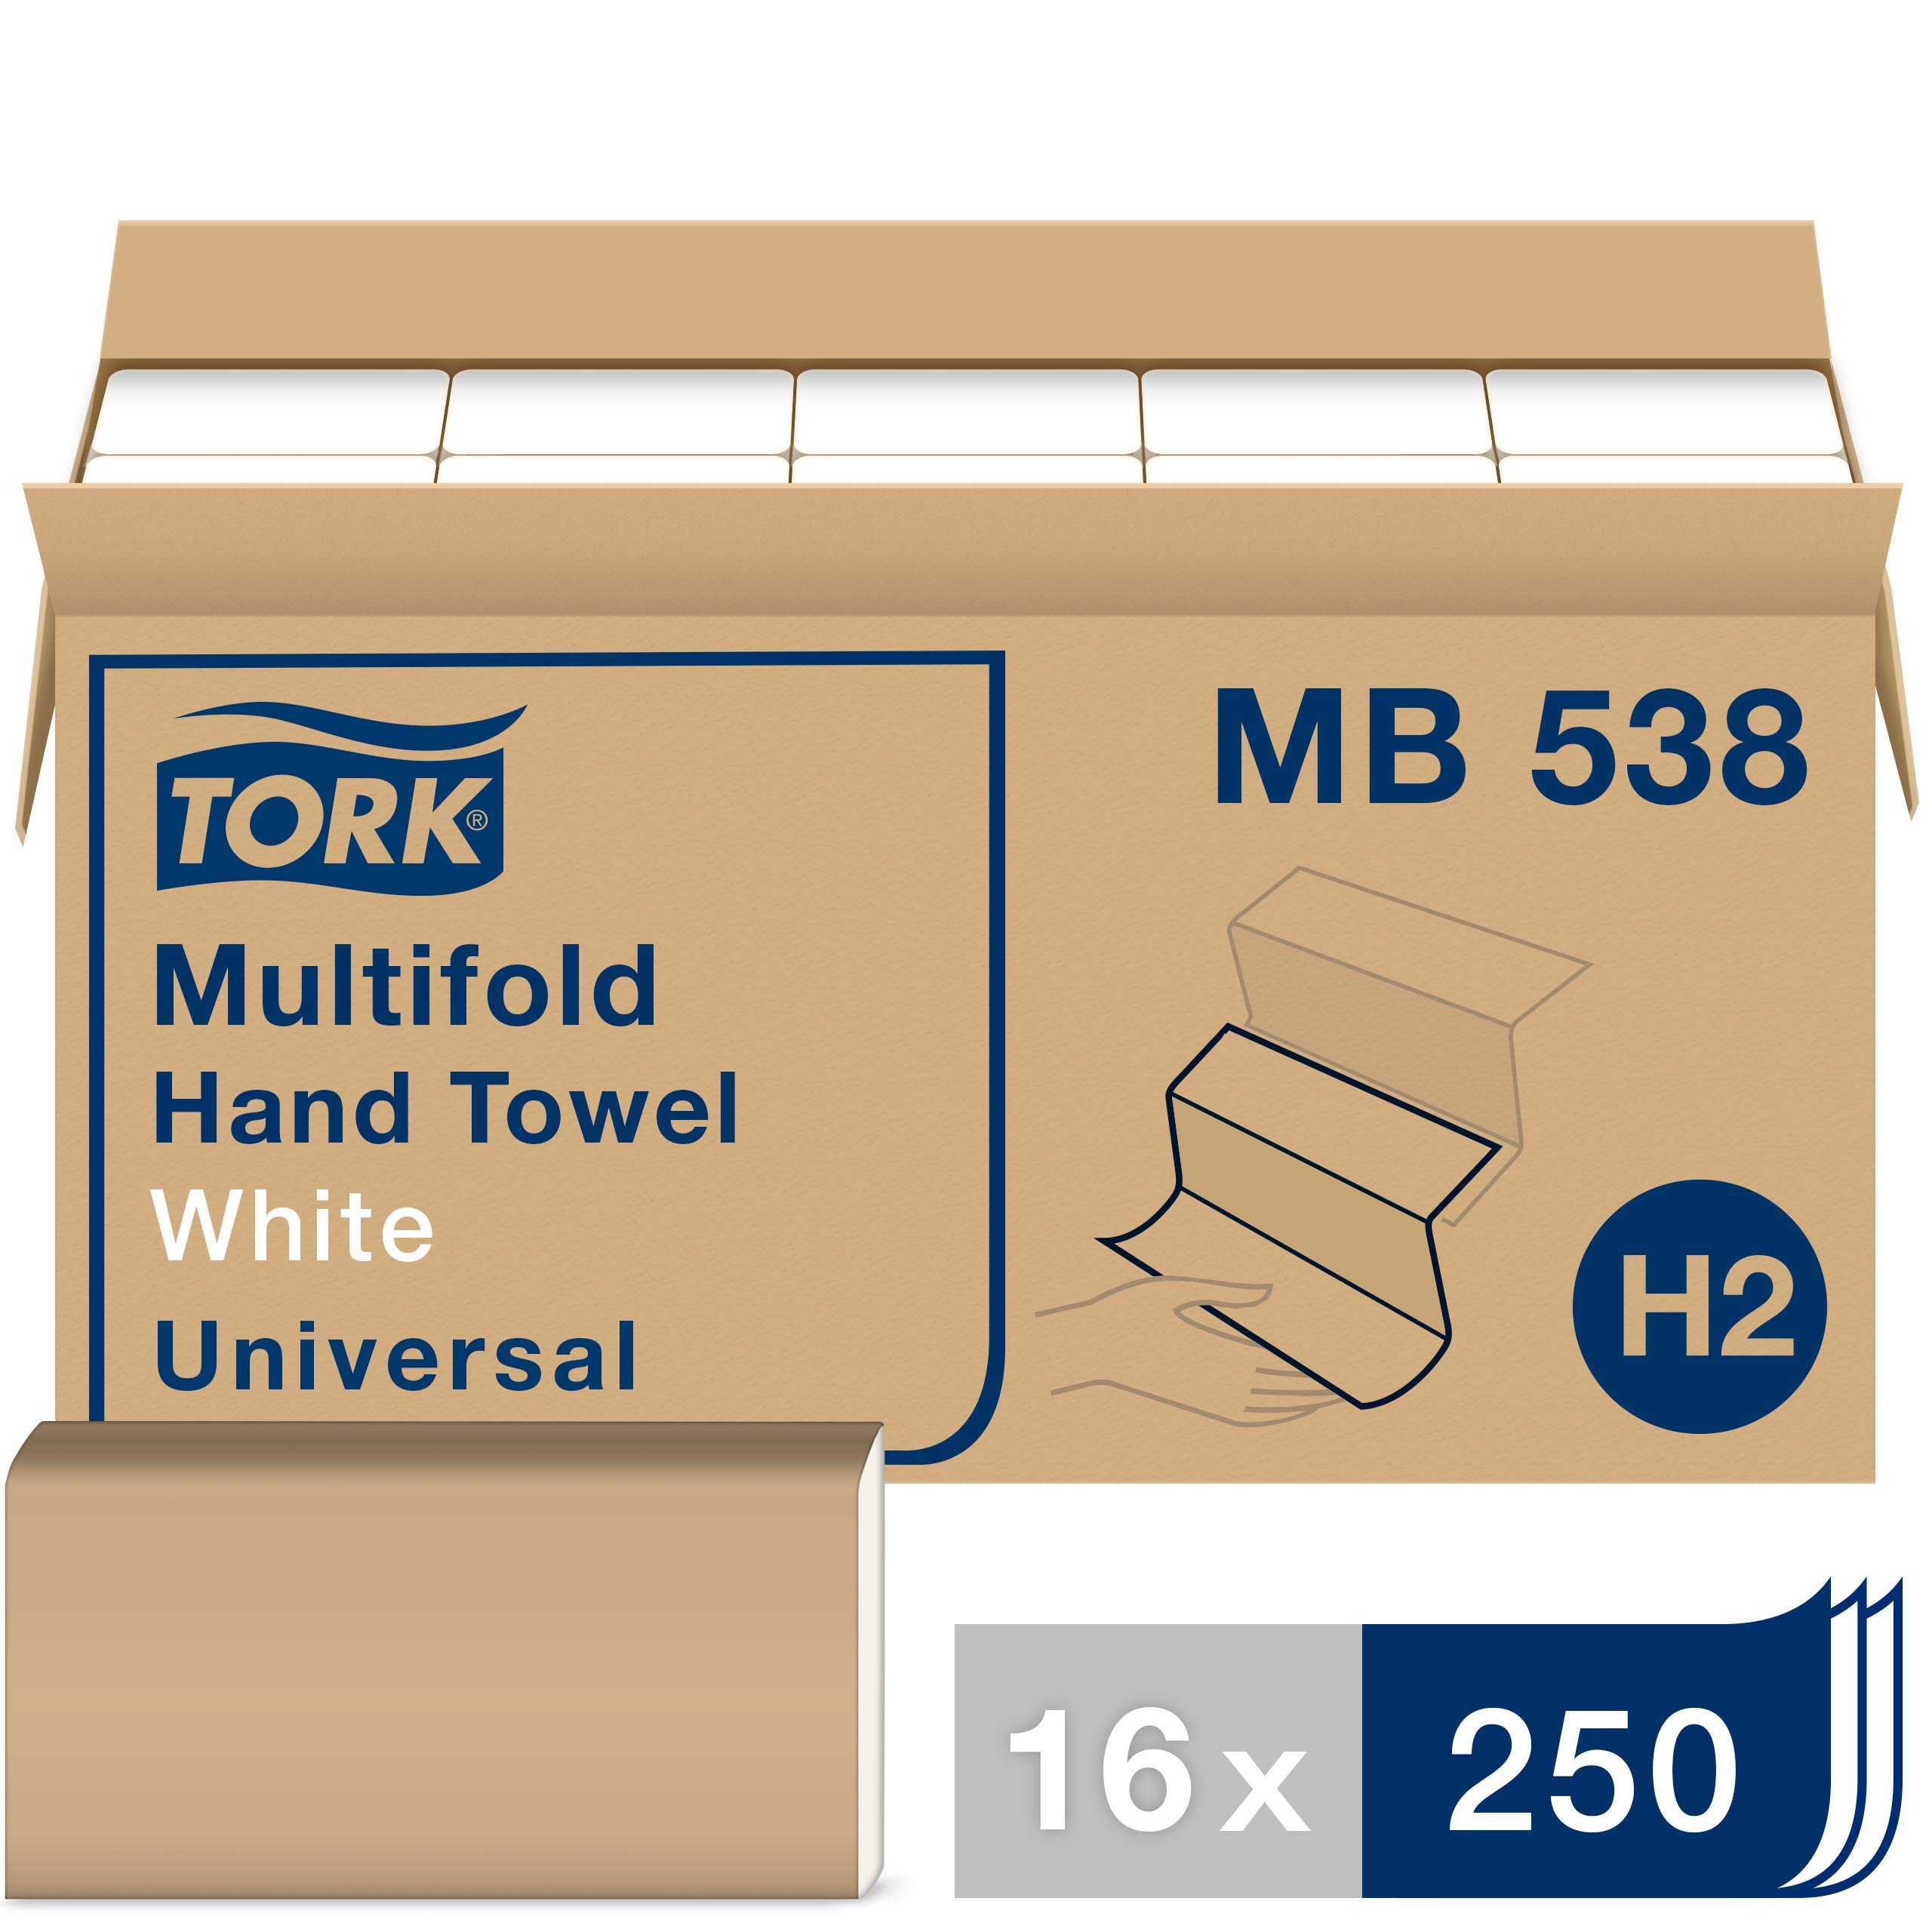 Tork MB538 Universal Multifold Hand Towel, 1-Ply, 8.1'' Width x 9.5'' Length, White (Case of 16 Packs, 250 per Pack, 4,000 Towels per Case) by Tork